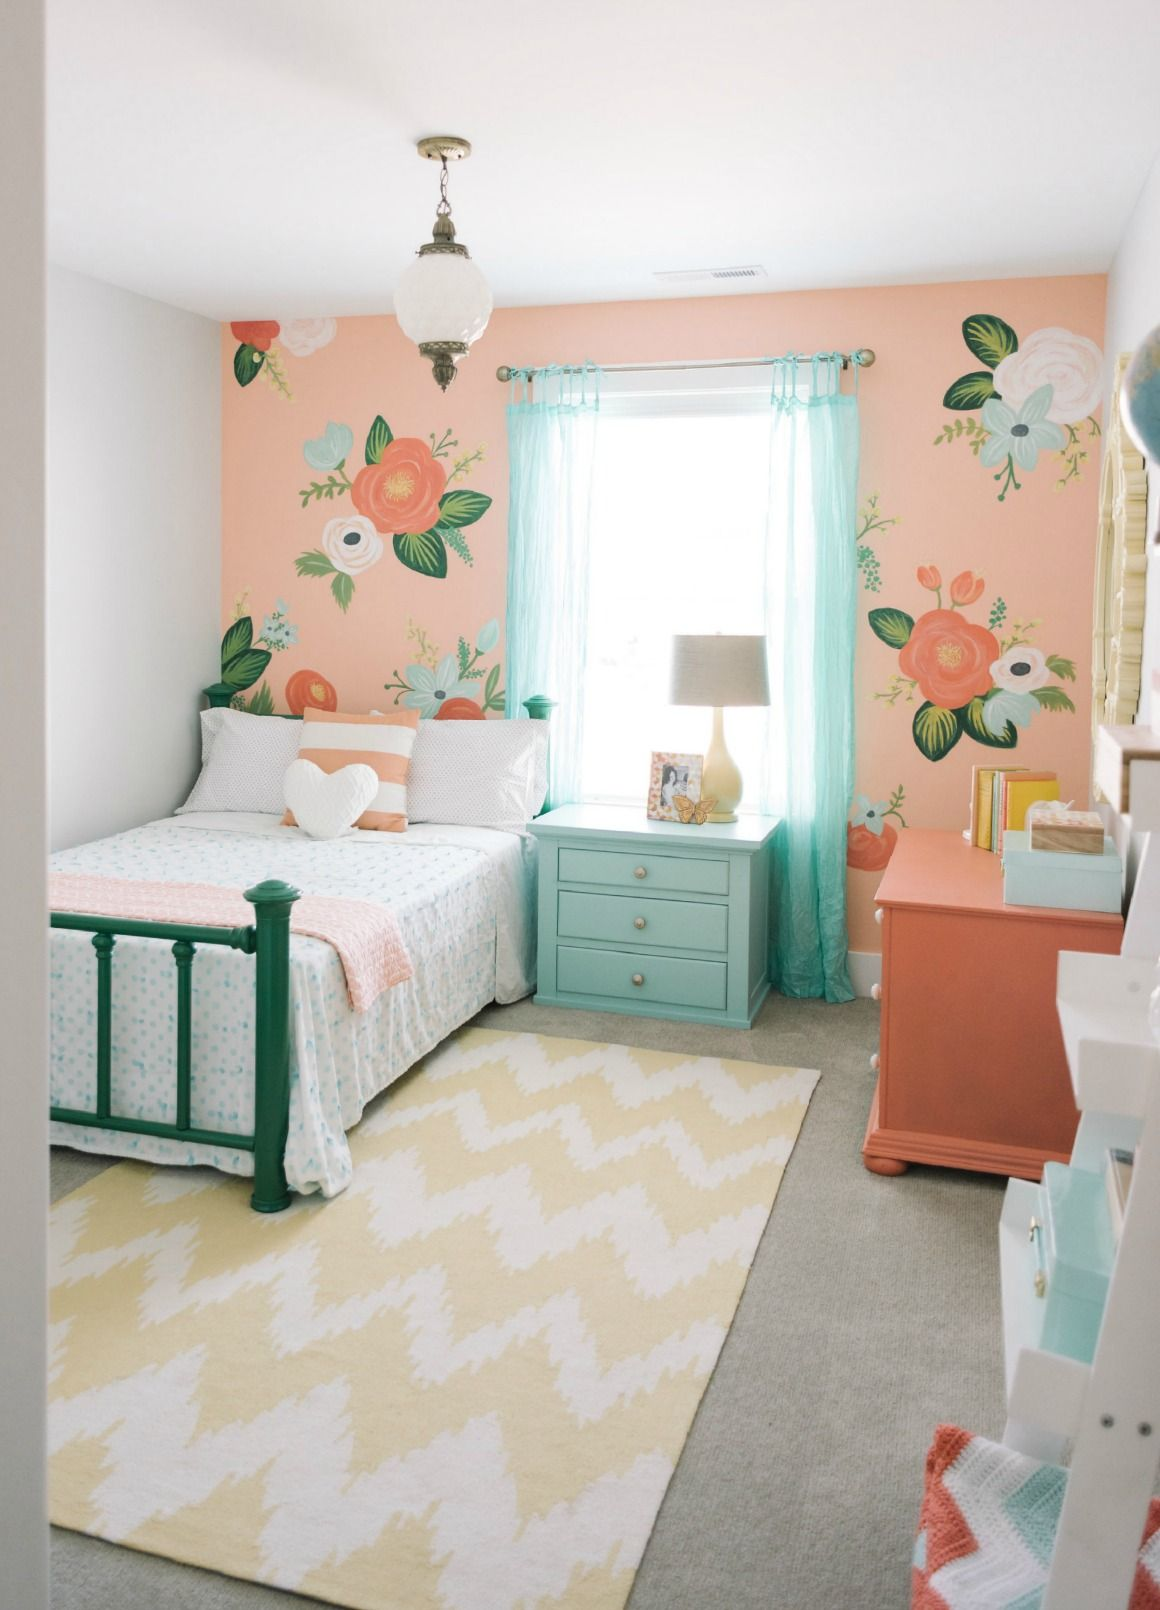 Designs For Girls Rooms: Kids Space With Design Loves Details